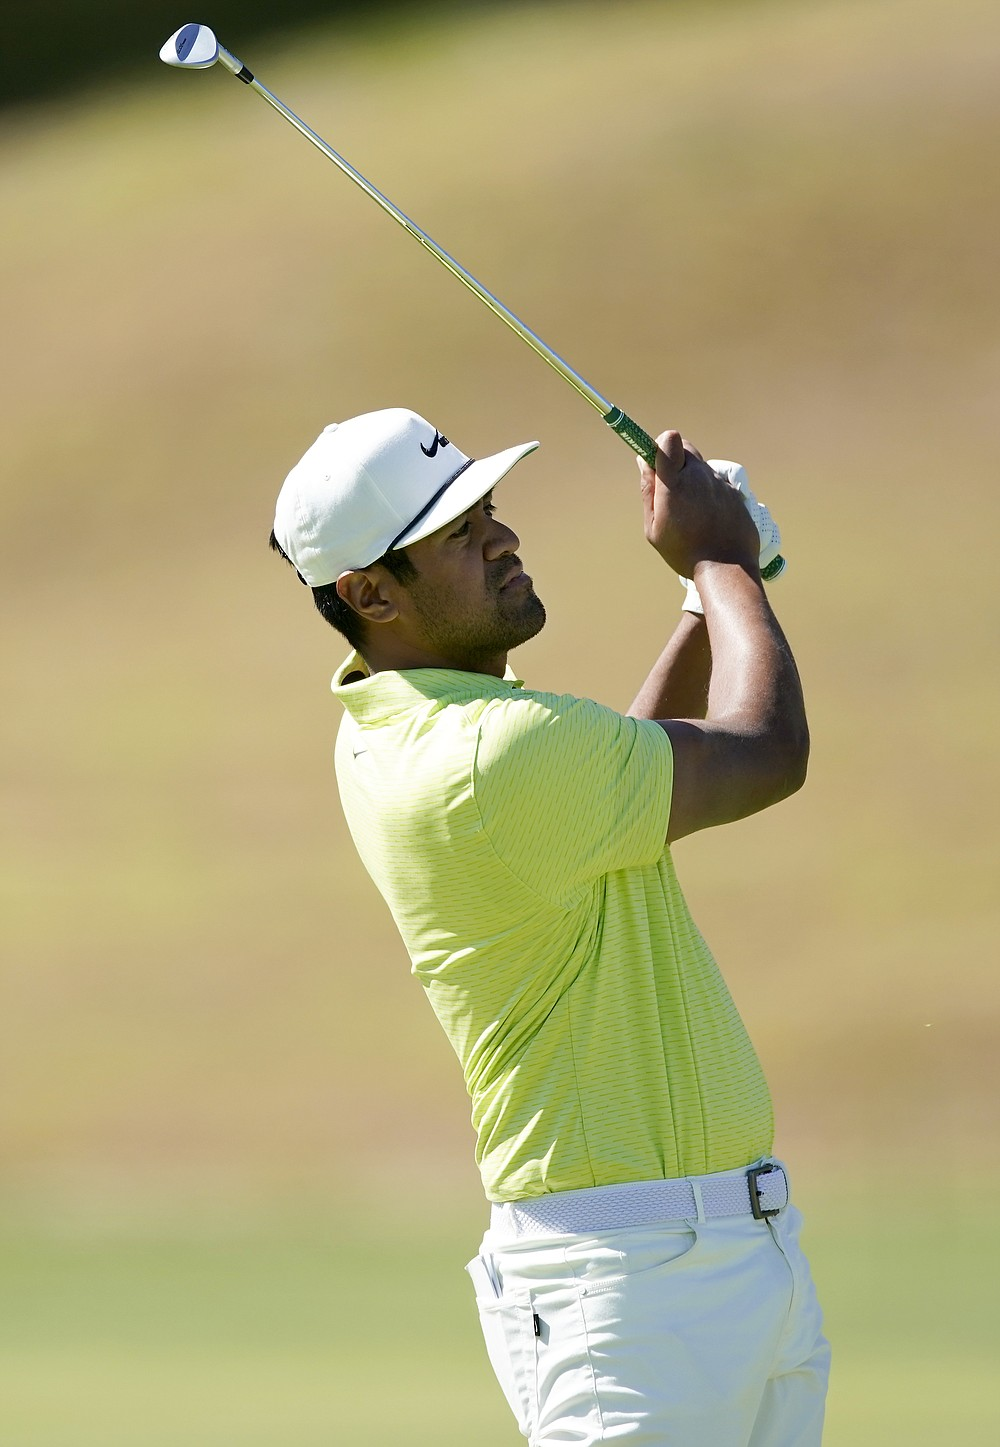 Tony Finau watches his second shot on the ninth hole during the final round of the Genesis Invitational golf tournament at Riviera Country Club, Sunday, Feb. 21, 2021, in the Pacific Palisades area of Los Angeles. (AP Photo/Ryan Kang)